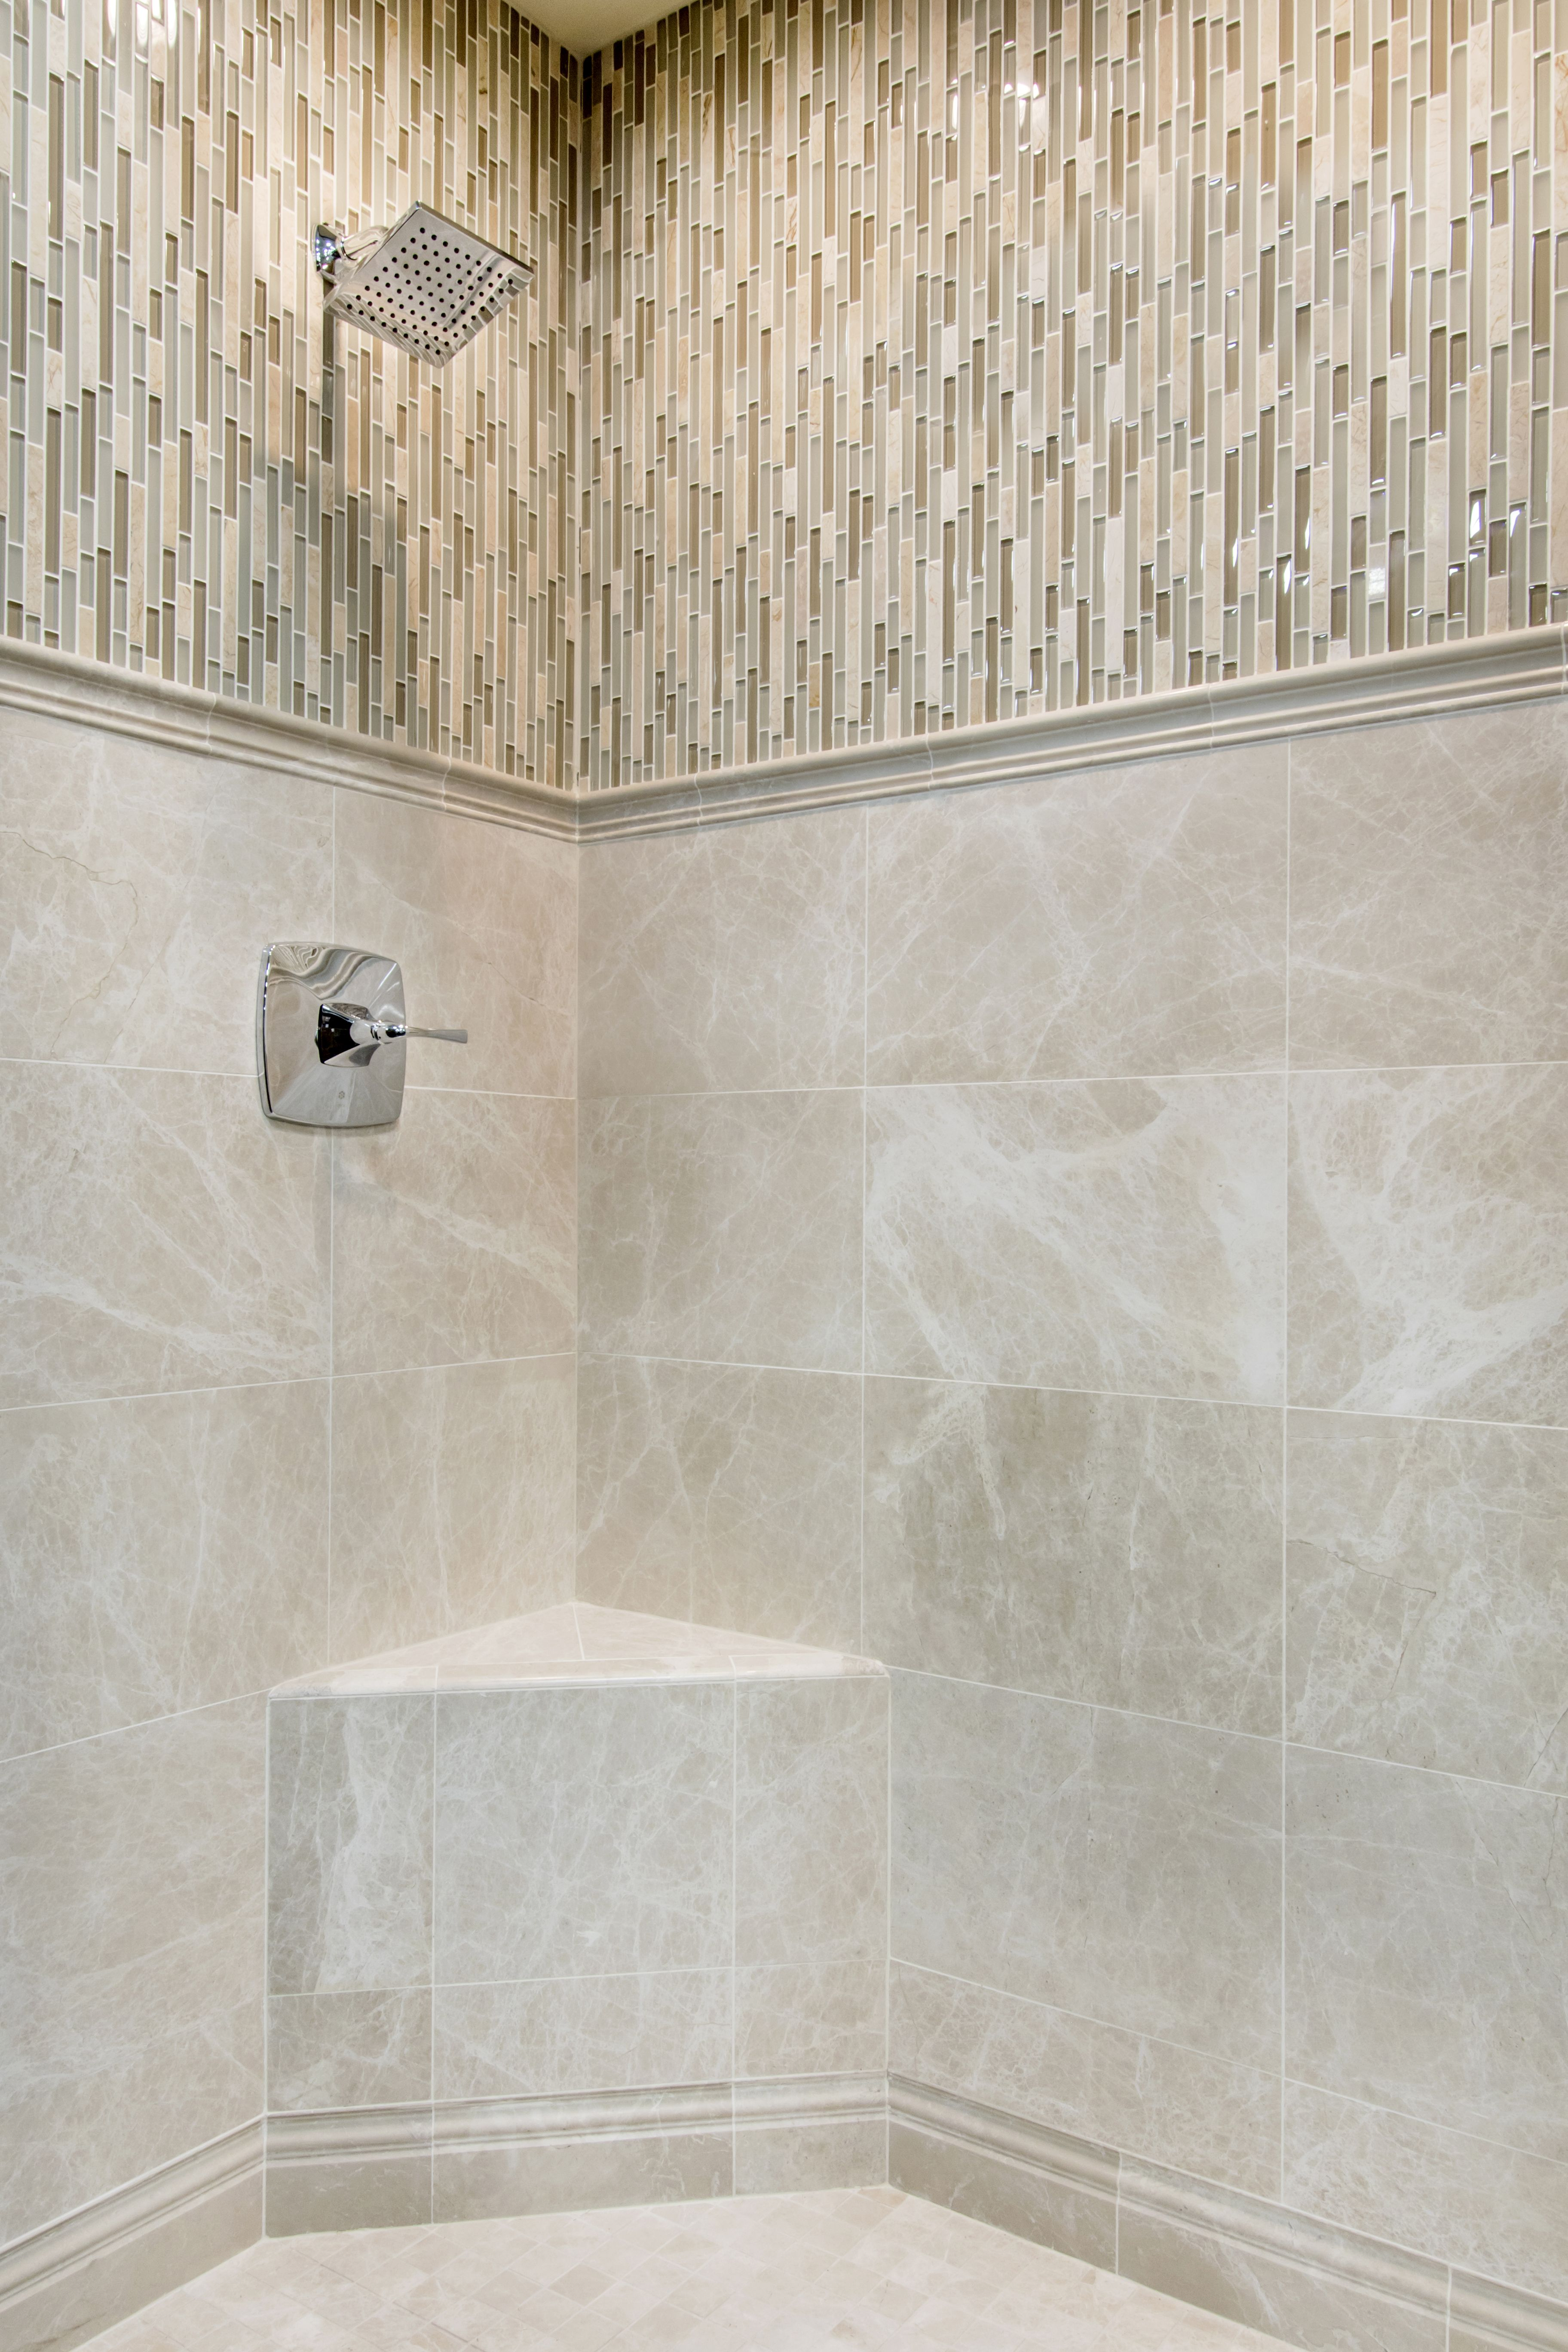 Cappuccino bathroom tiles - This Mosaic Composition Combines Cappuccino Colored Marble Tile With Geometric Stria In Taupe Platinum